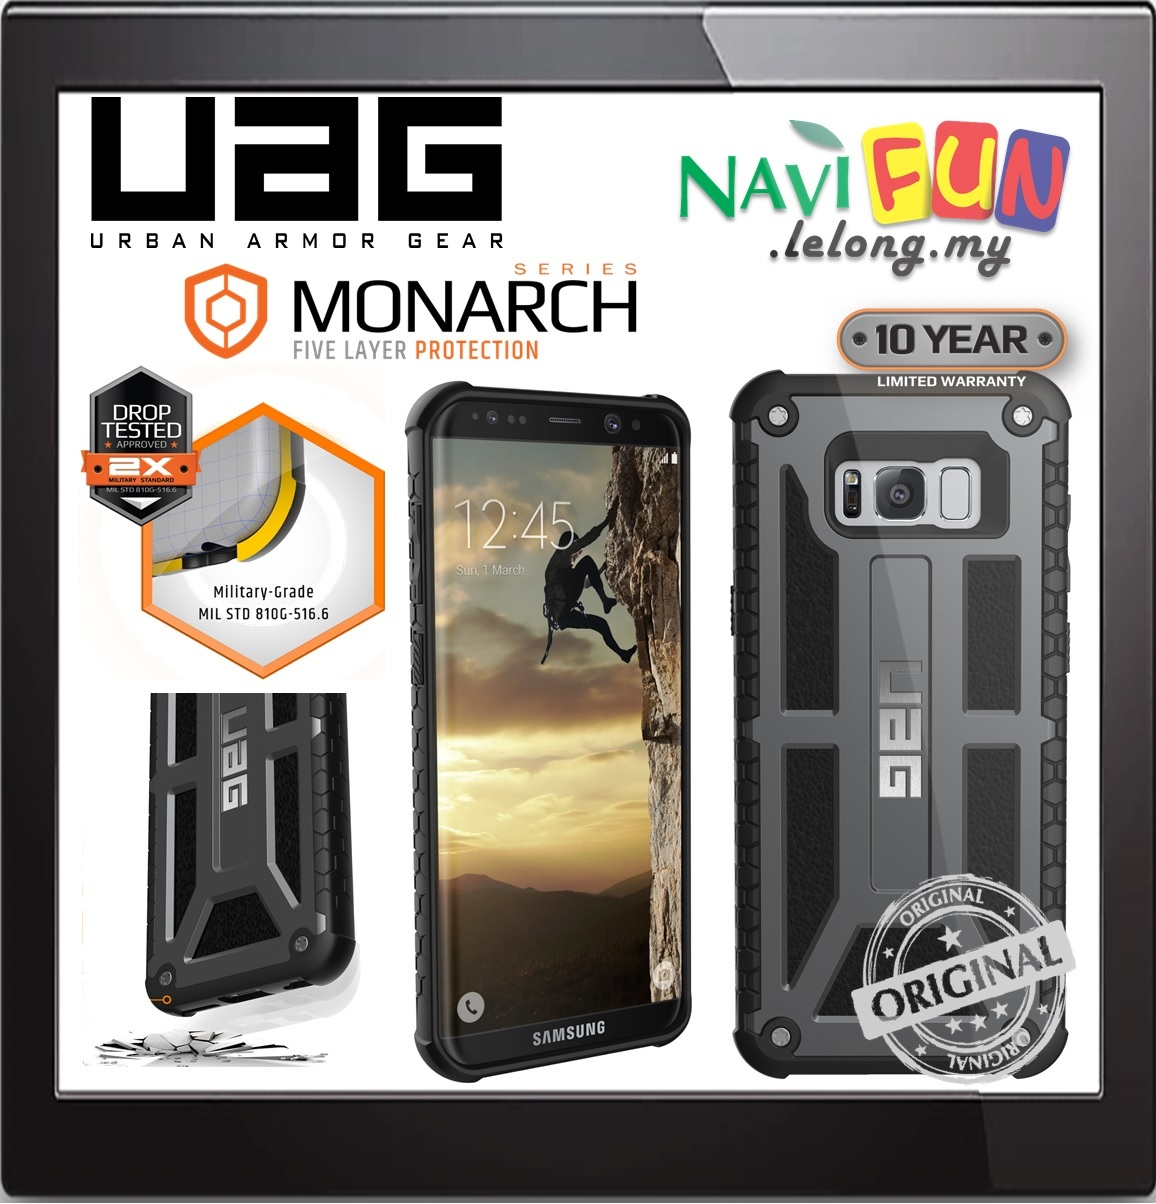 Galaxy s6 cases shop samsung cases online uag urban armor gear - Urban Armor Gear Uag Monarch Case Samusng S8 Plus